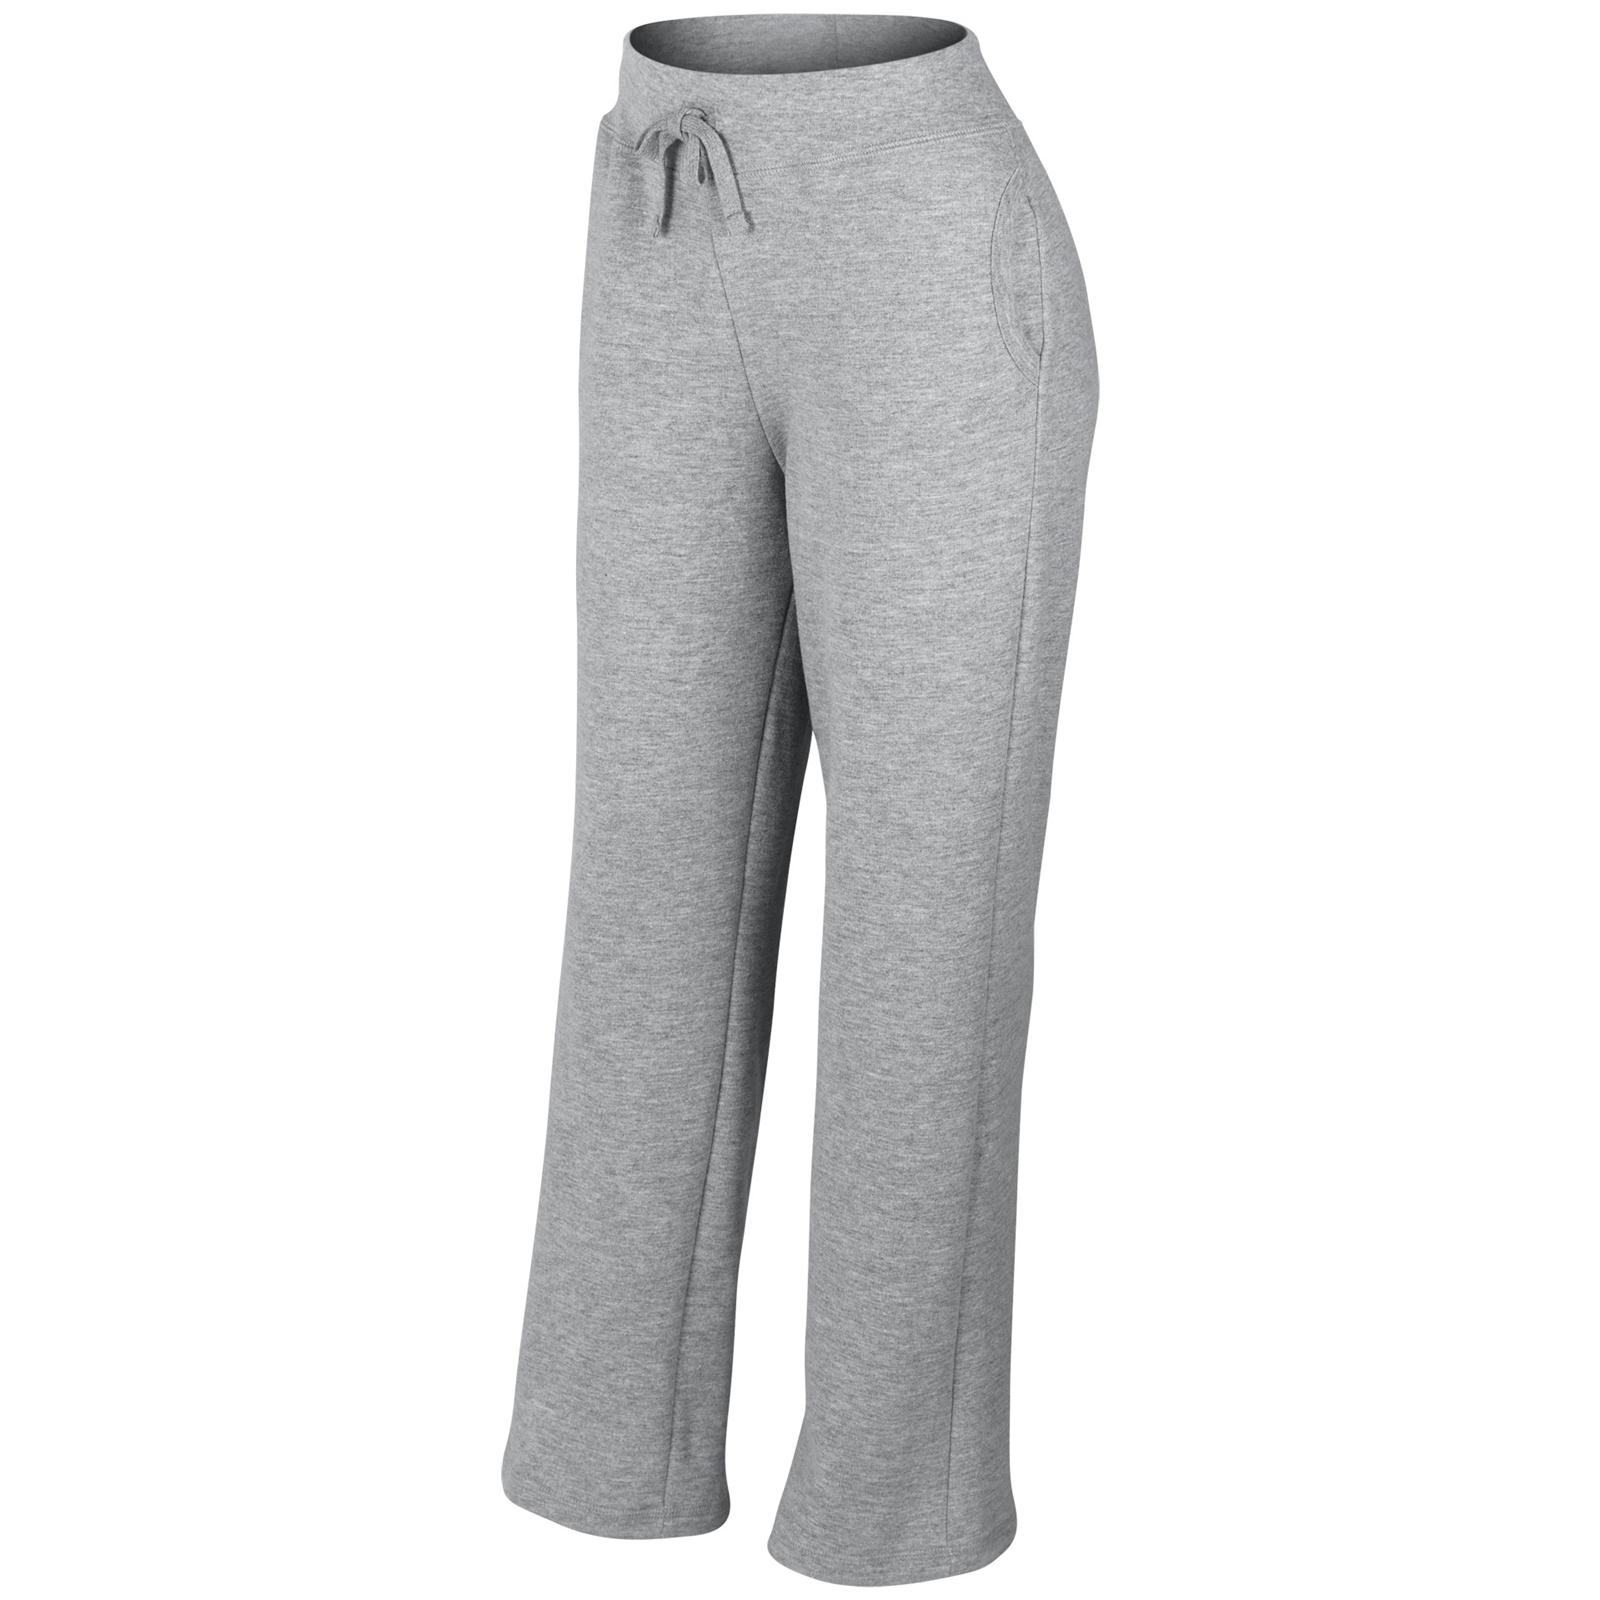 Beautiful  Nike Tech Fleece On Pinterest  Nike Sweatpants Sweatpants And Nike